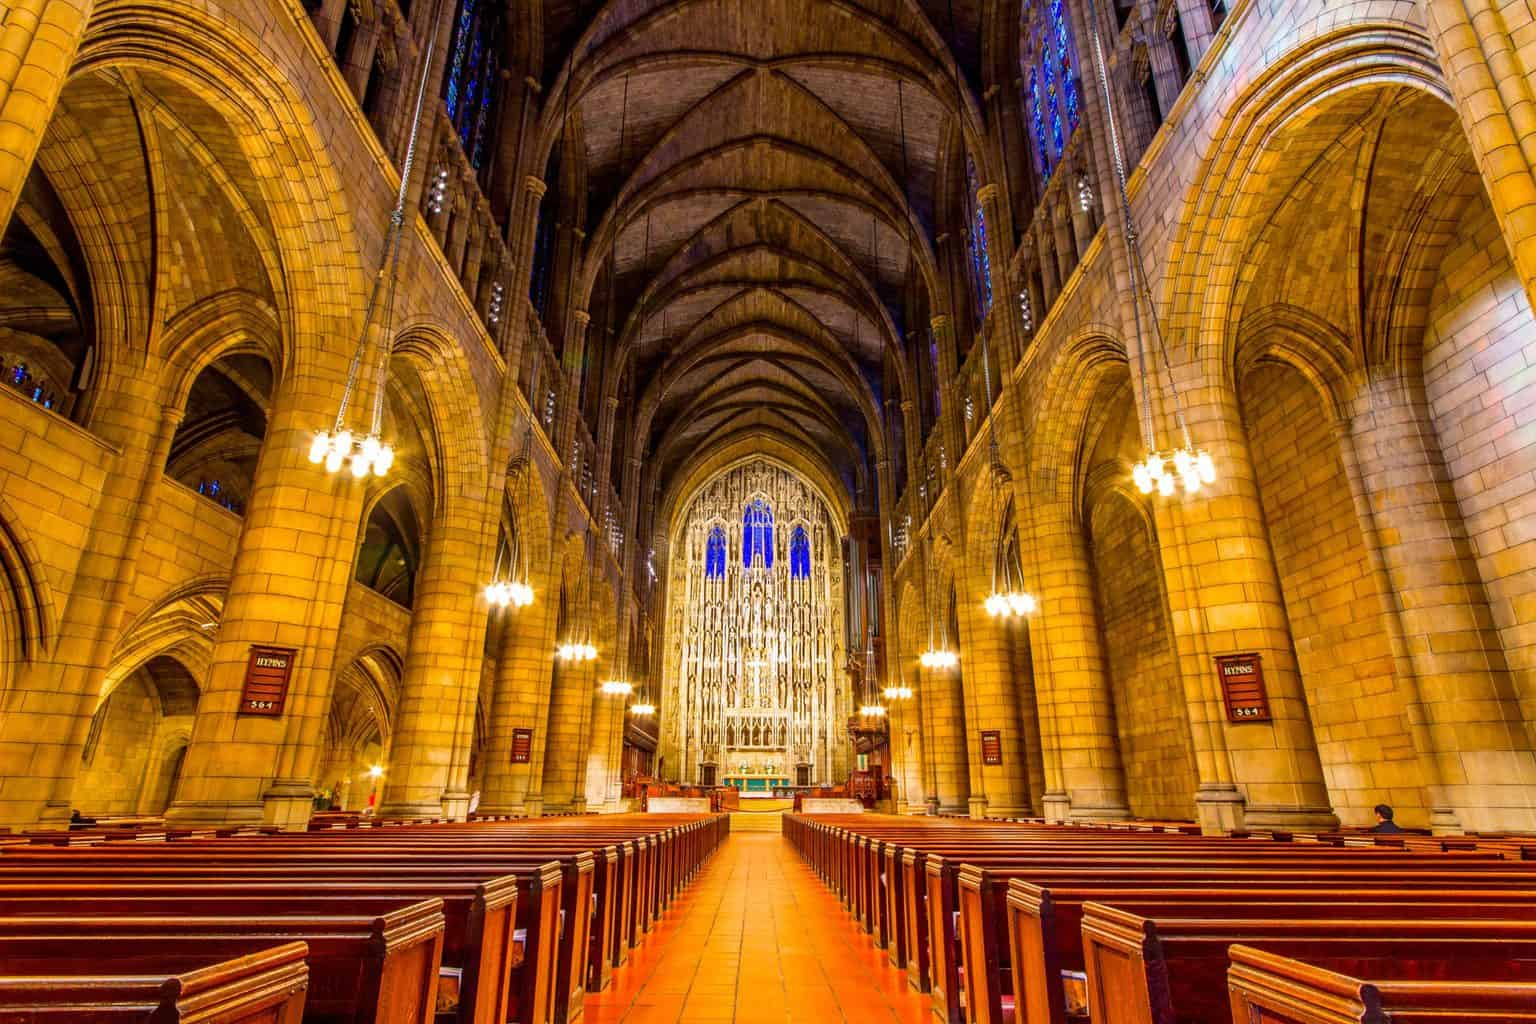 The gorgeous, French High Gothic style interior of St. Thomas on Fifth Avenue Church (image sourced from Flickr.com).